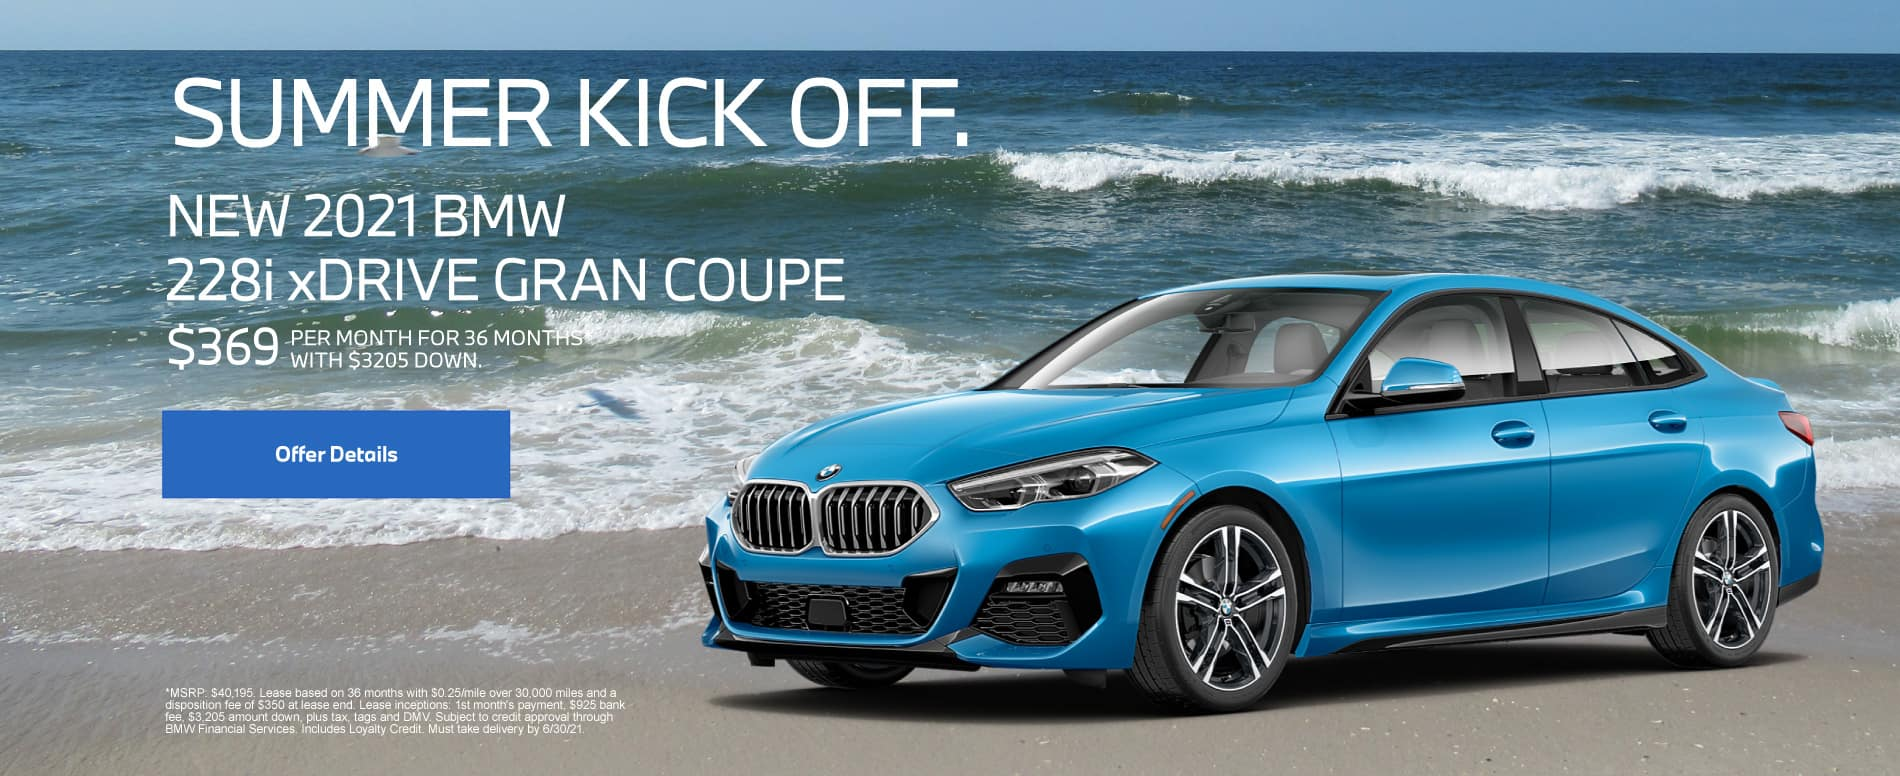 New 2021 BMW 228i xDrive Gran Coupe - $369 per month for 36 months With $3205 down*